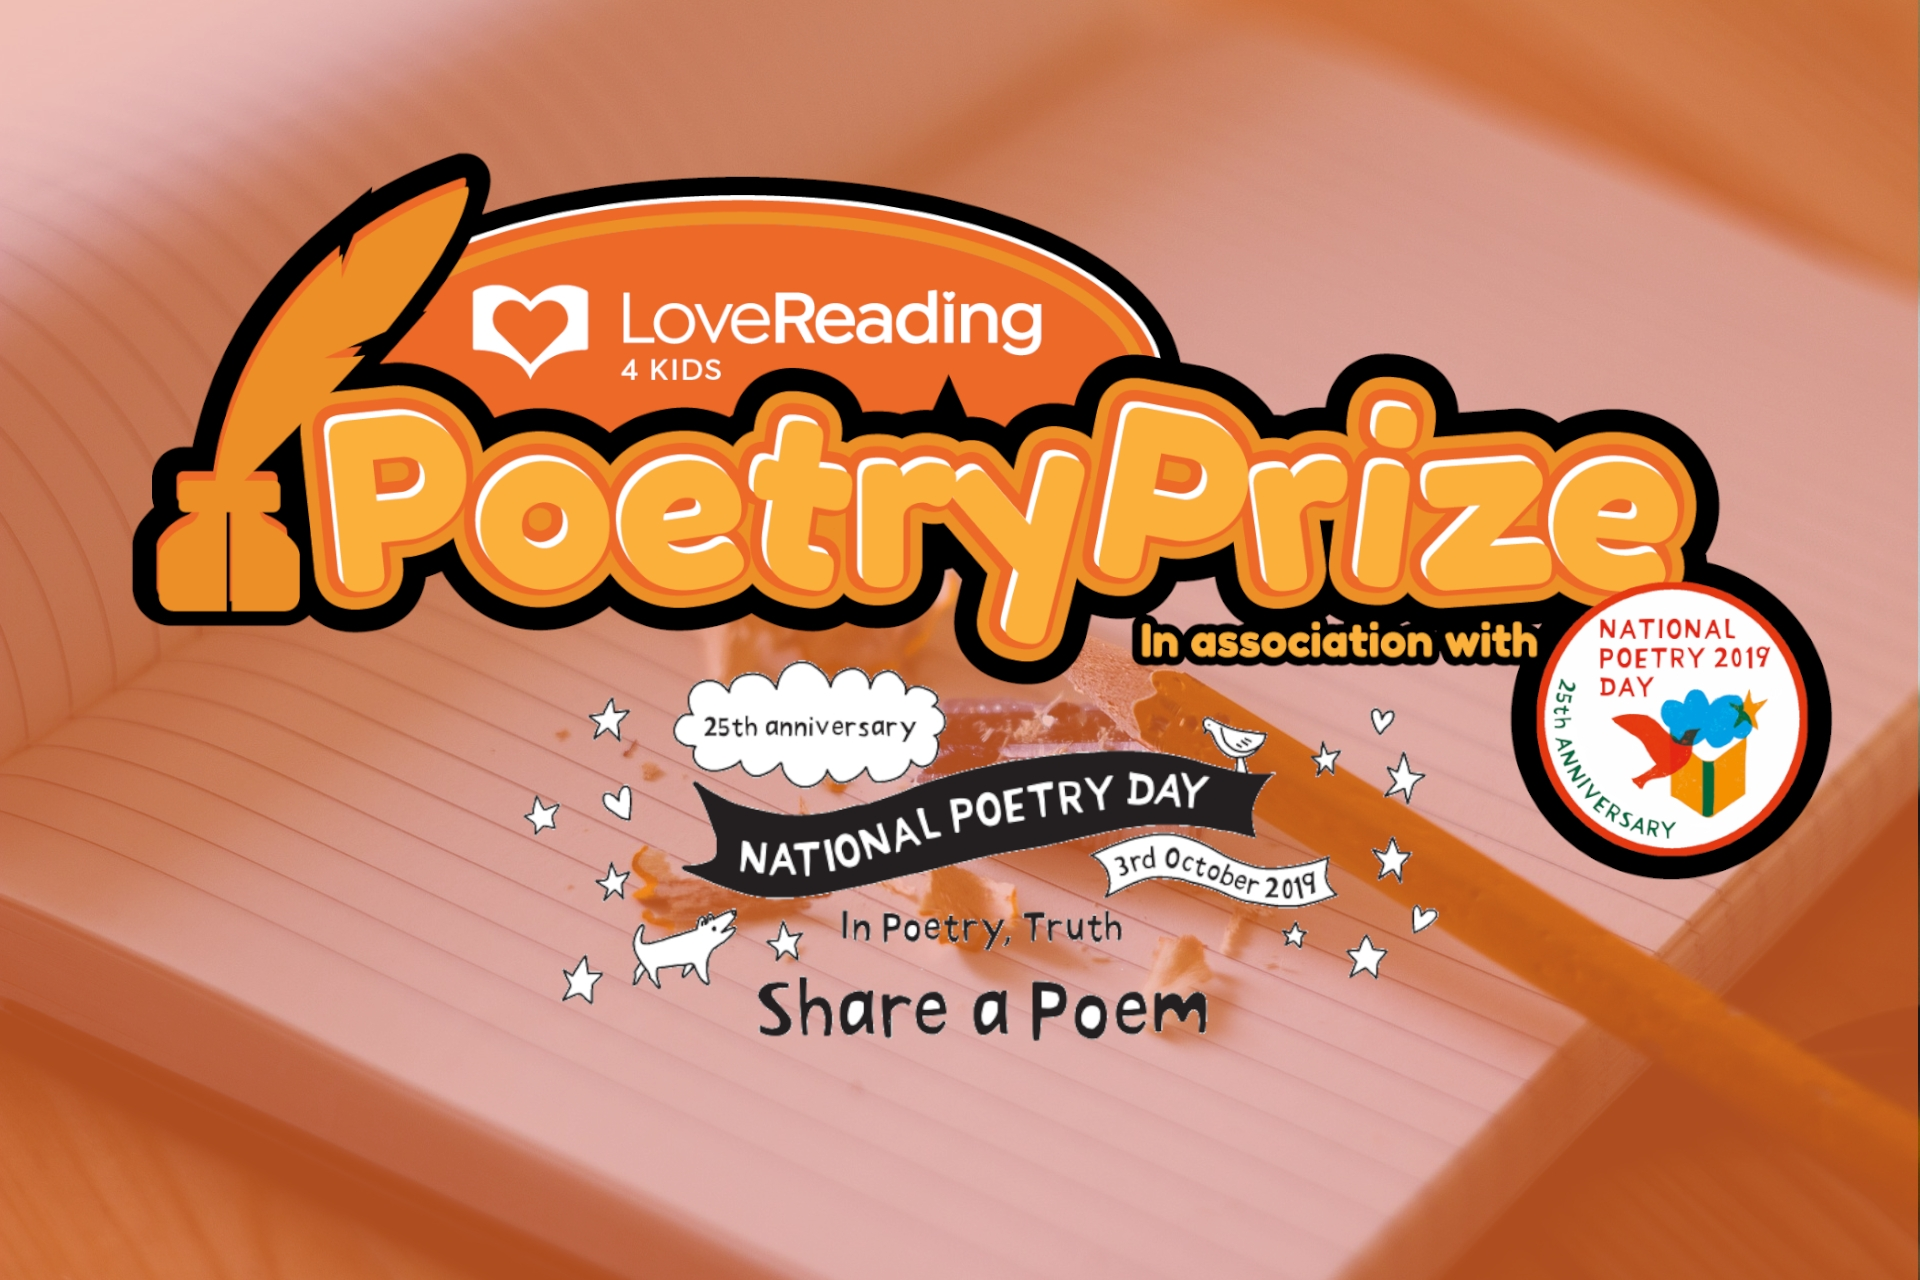 What You Need to Know About the LoveReading4Kids Poetry Prize!